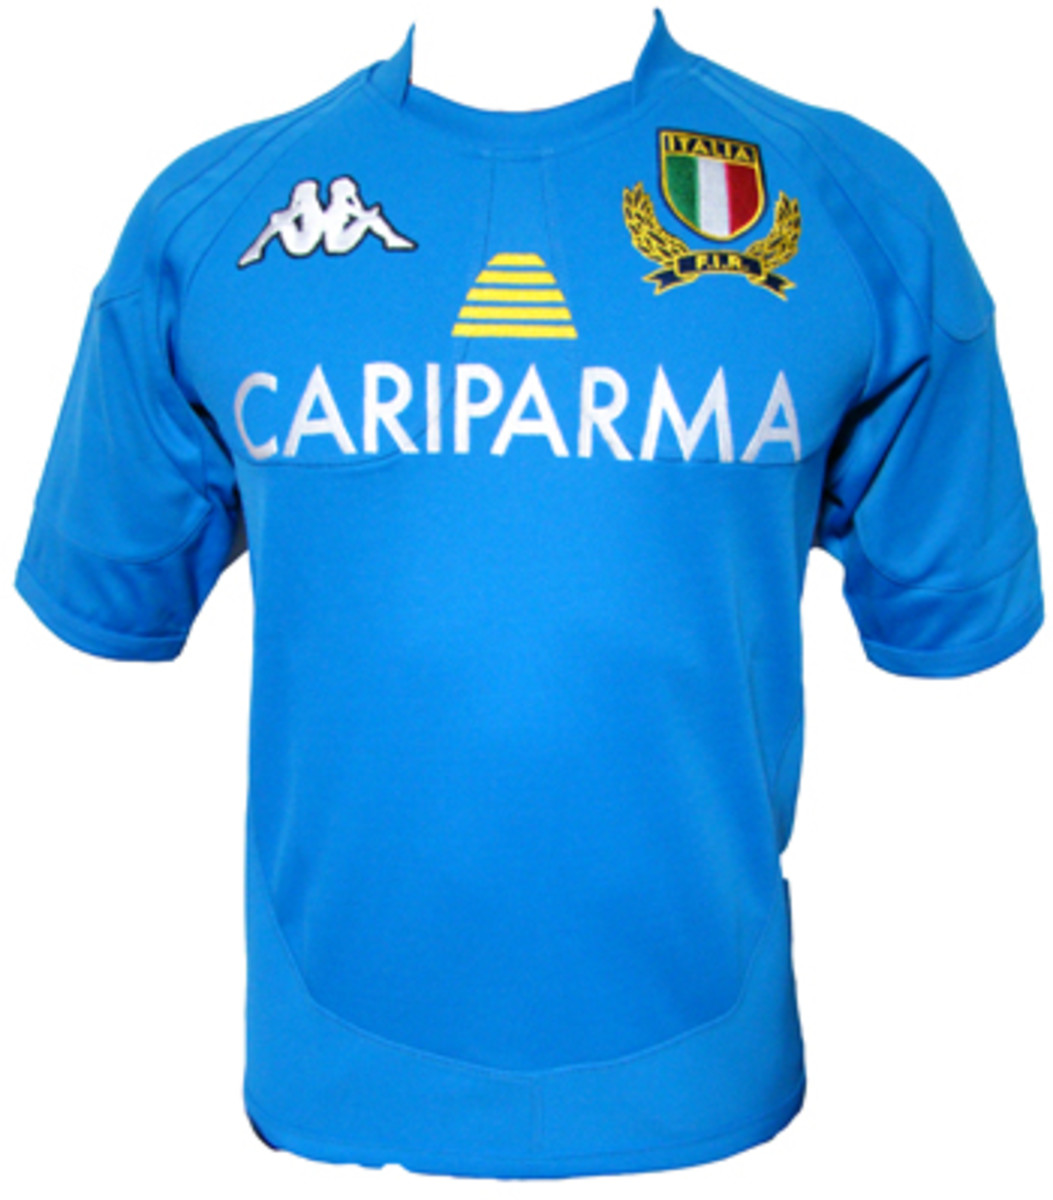 Italy's 2012 home kit